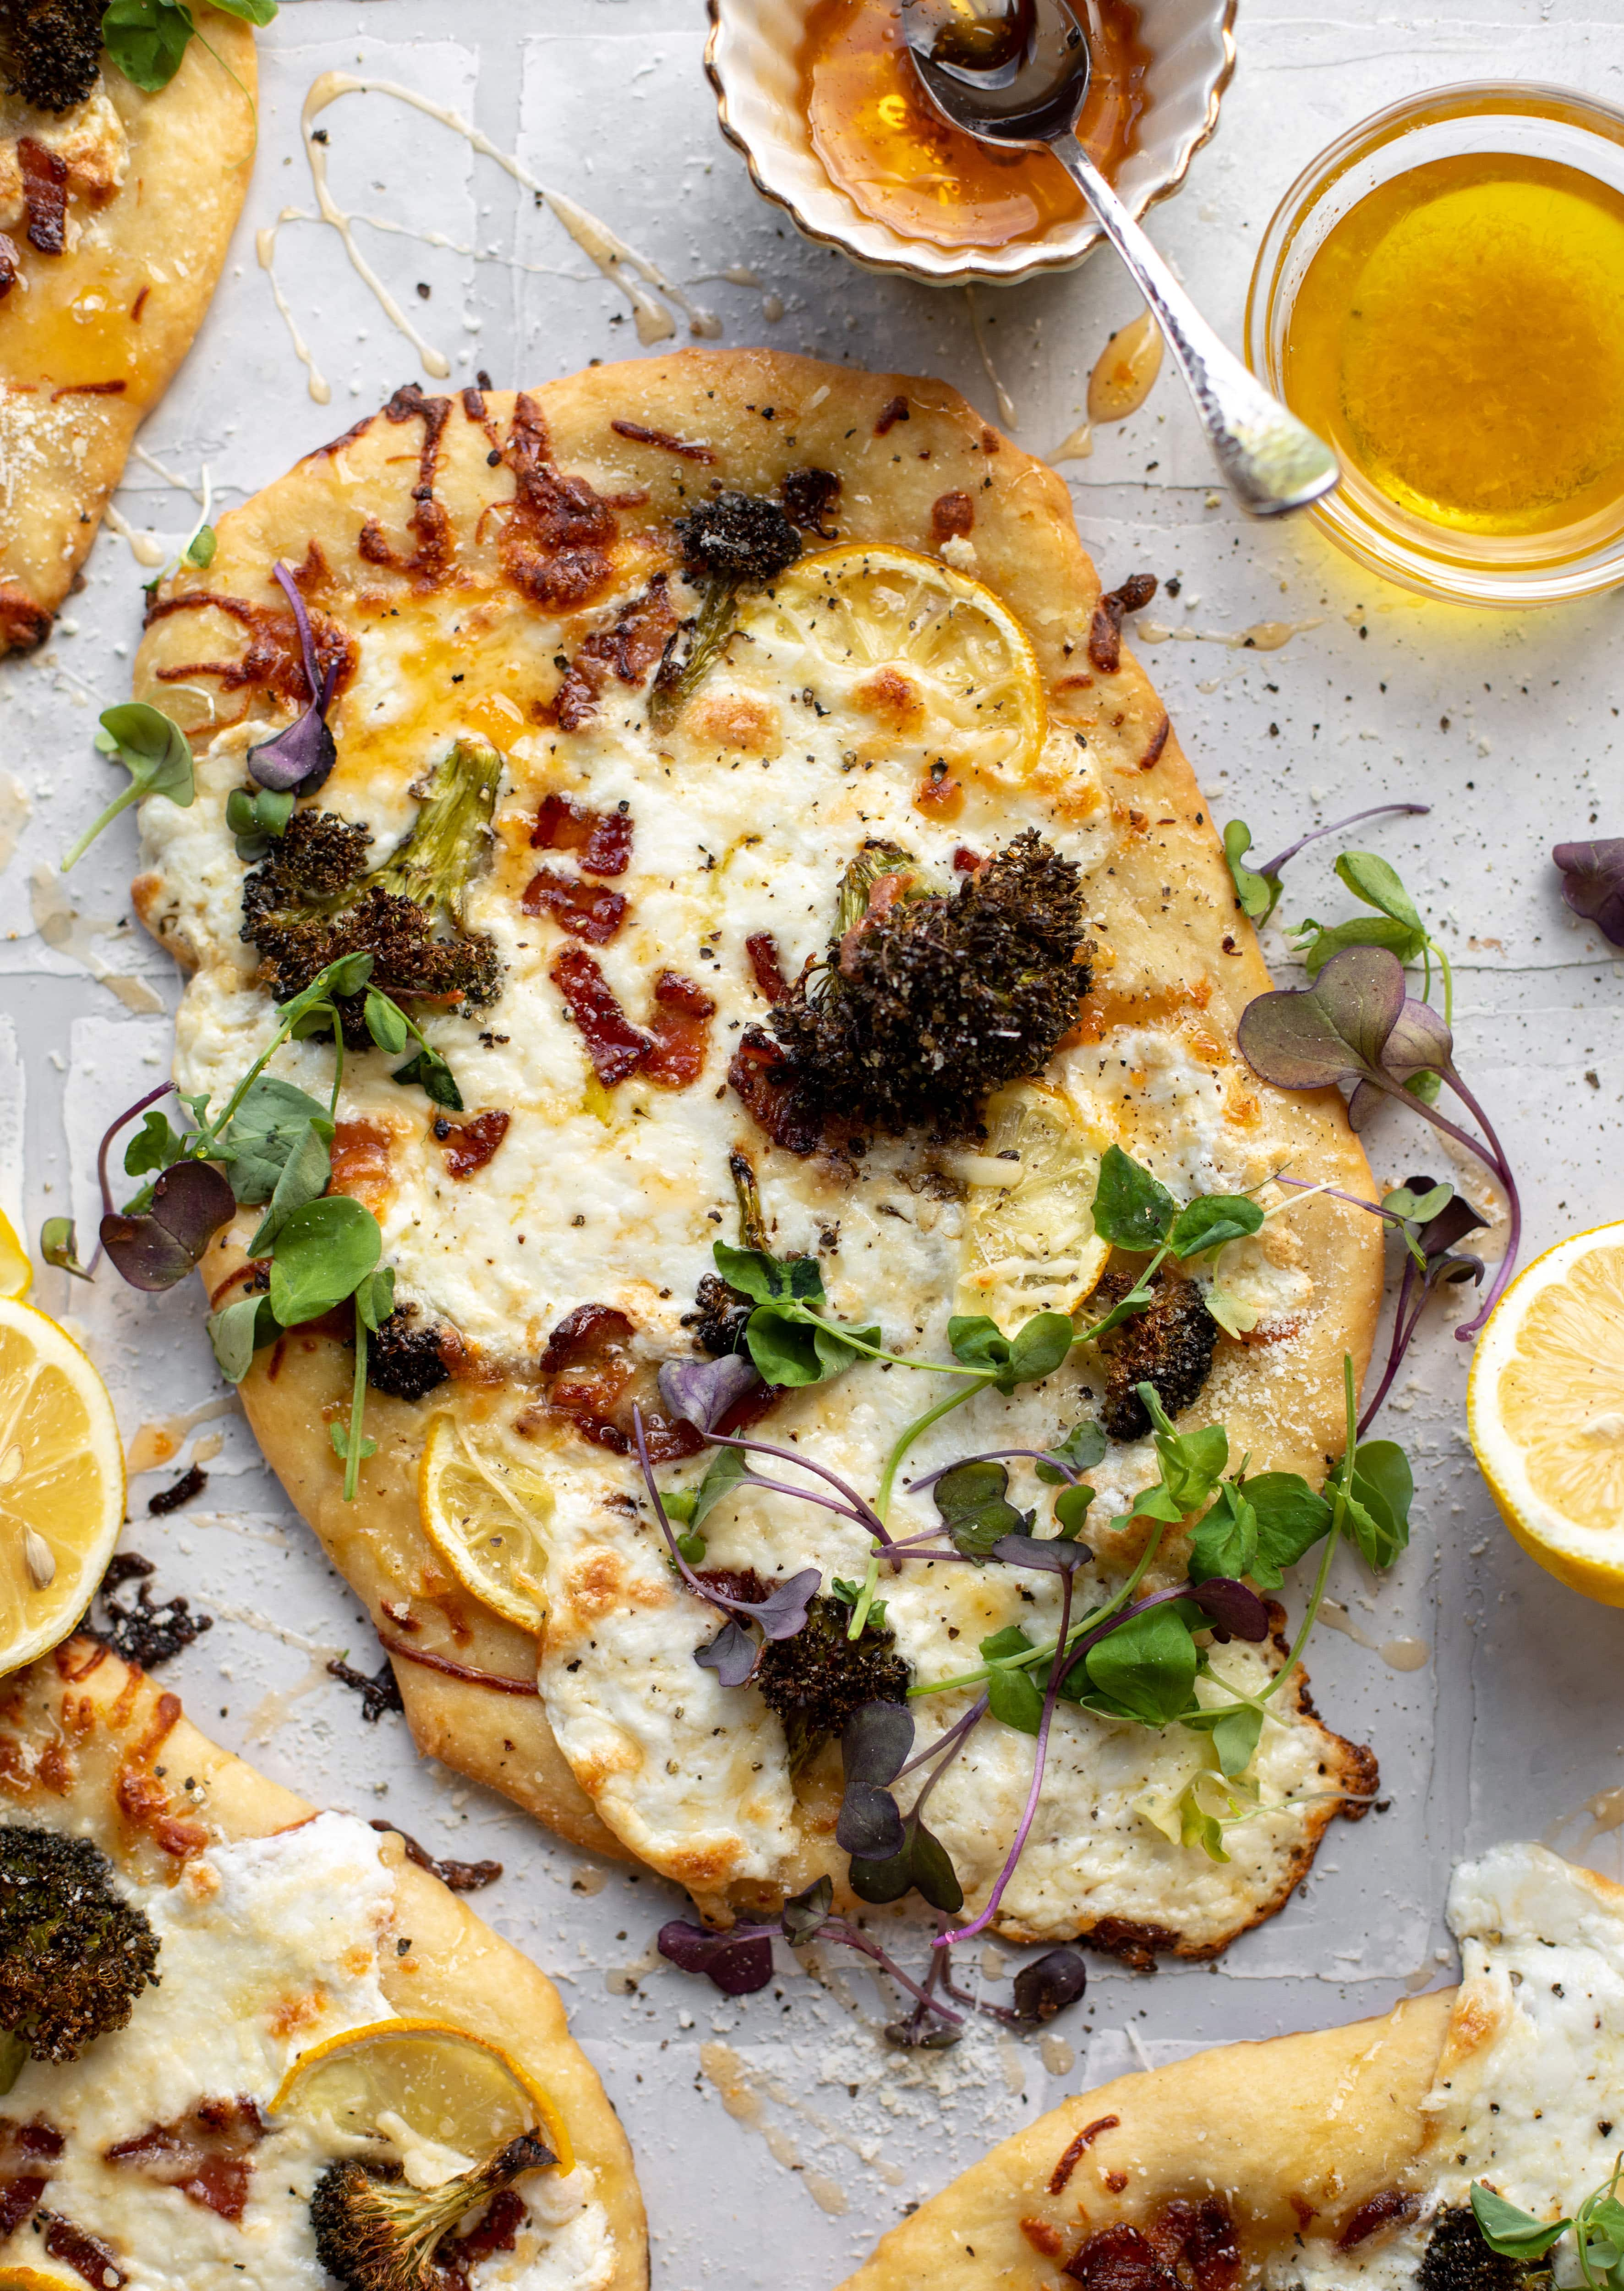 This cheesy lemon flatbread pizza is covered with burrata cheese, parmesan, roasted vegetables and hot honey. It's a flavor dream!